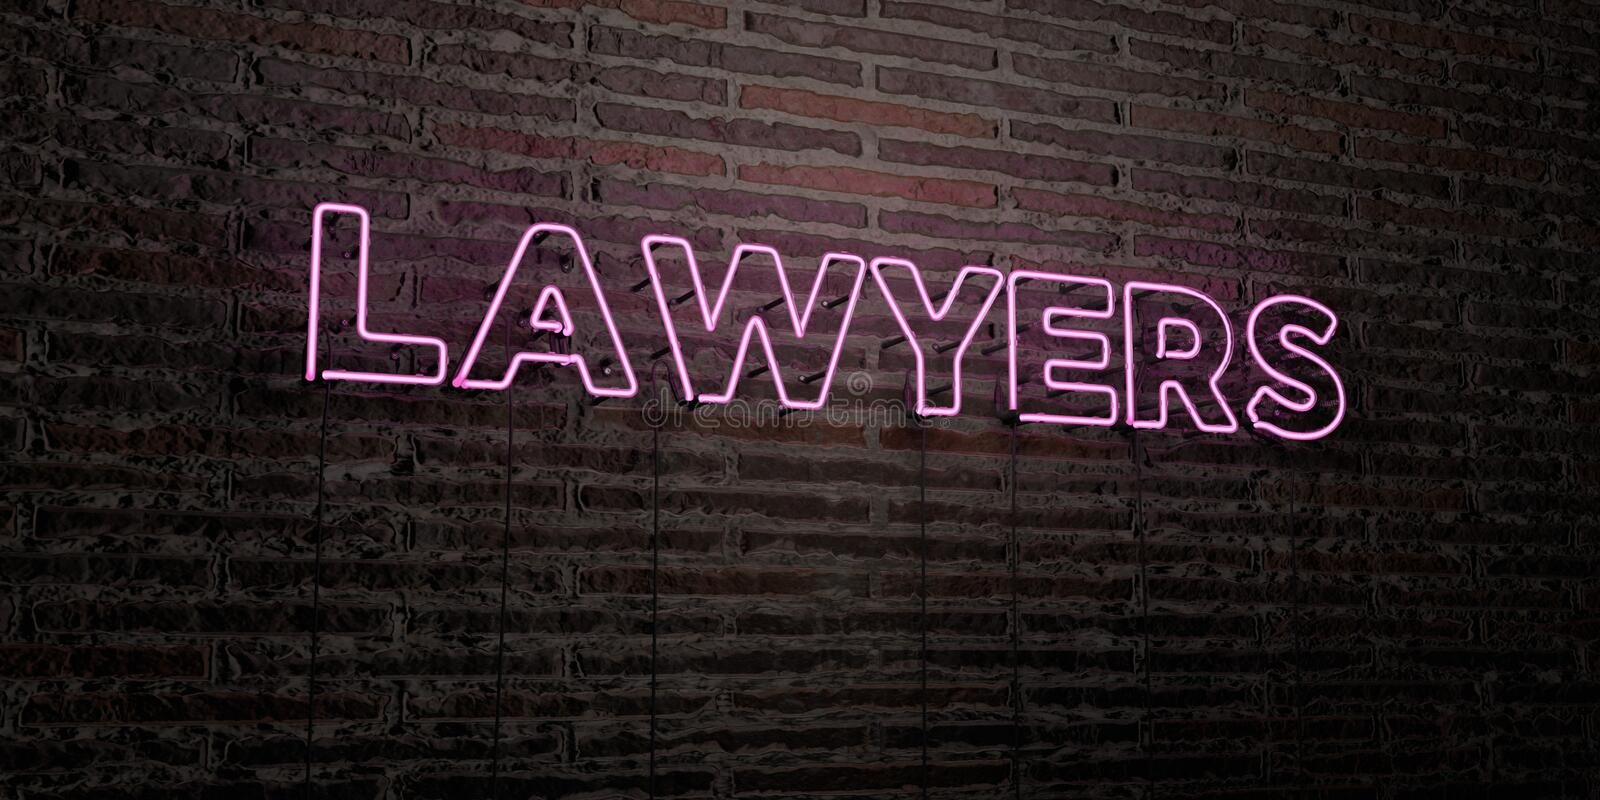 LAWYERS -Realistic Neon Sign on Brick Wall background - 3D rendered royalty free stock image vector illustration